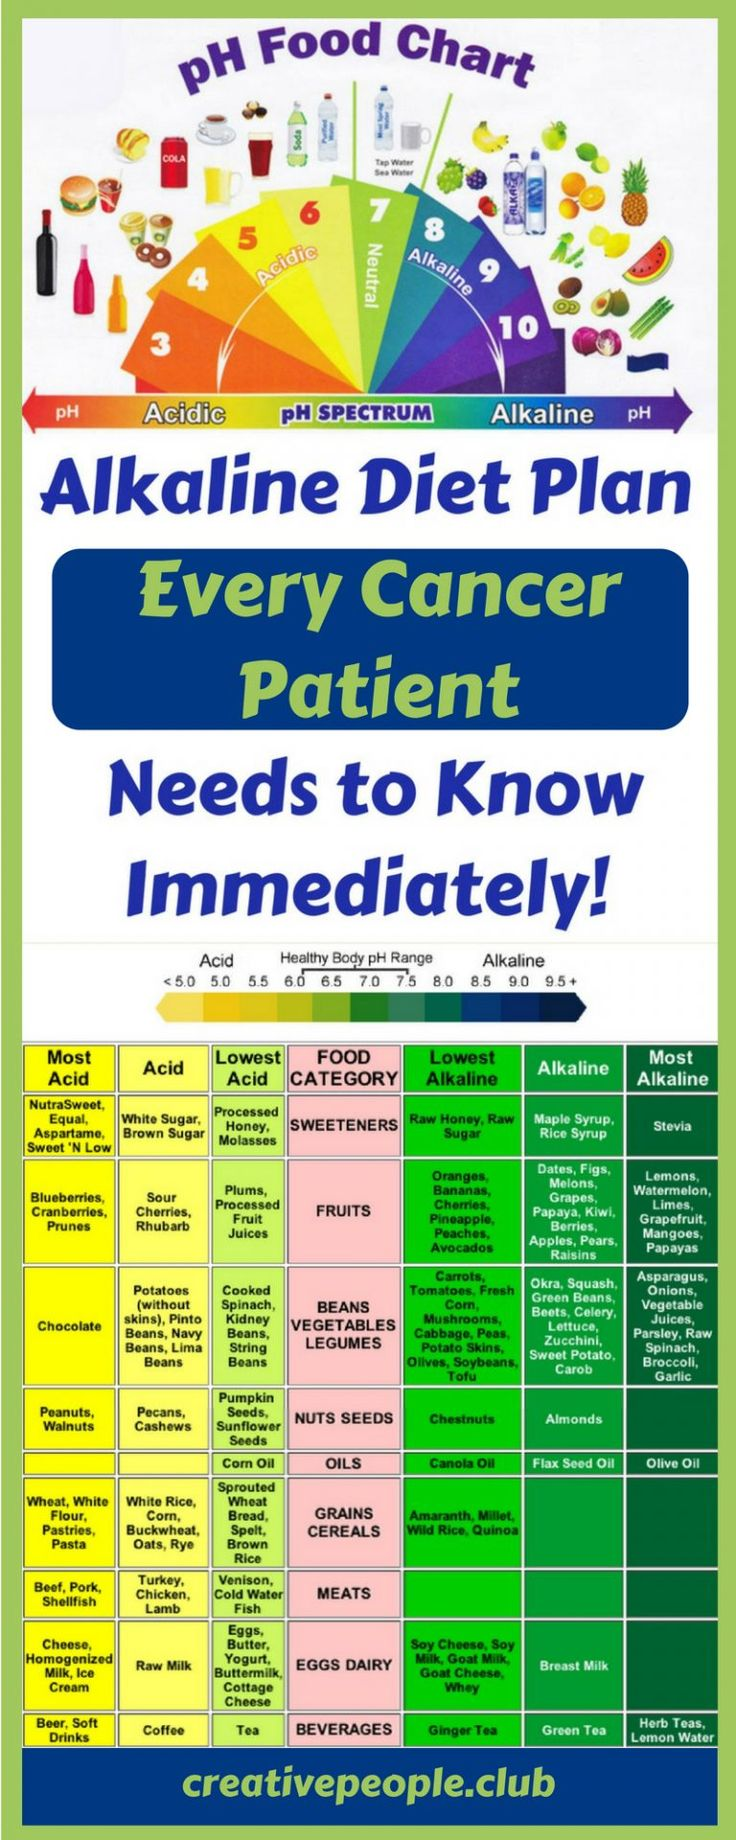 Alkaline Diet Plan – Every Cancer Patient Needs to Know It Immediately! – Cr...